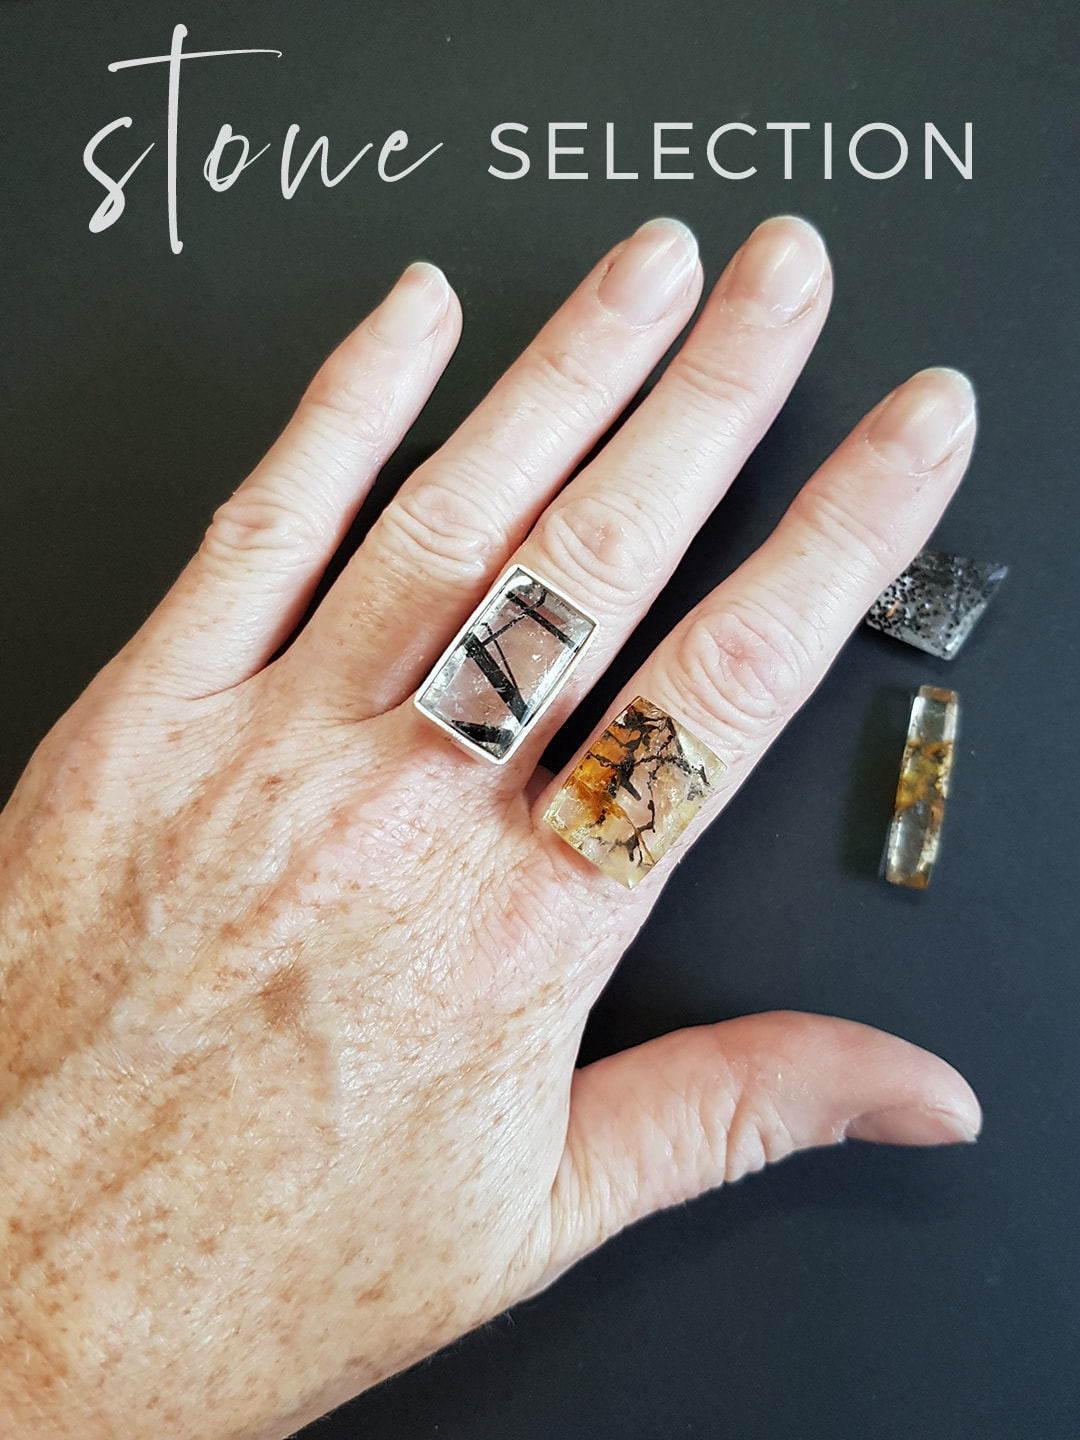 How to select a stone for a ring commission